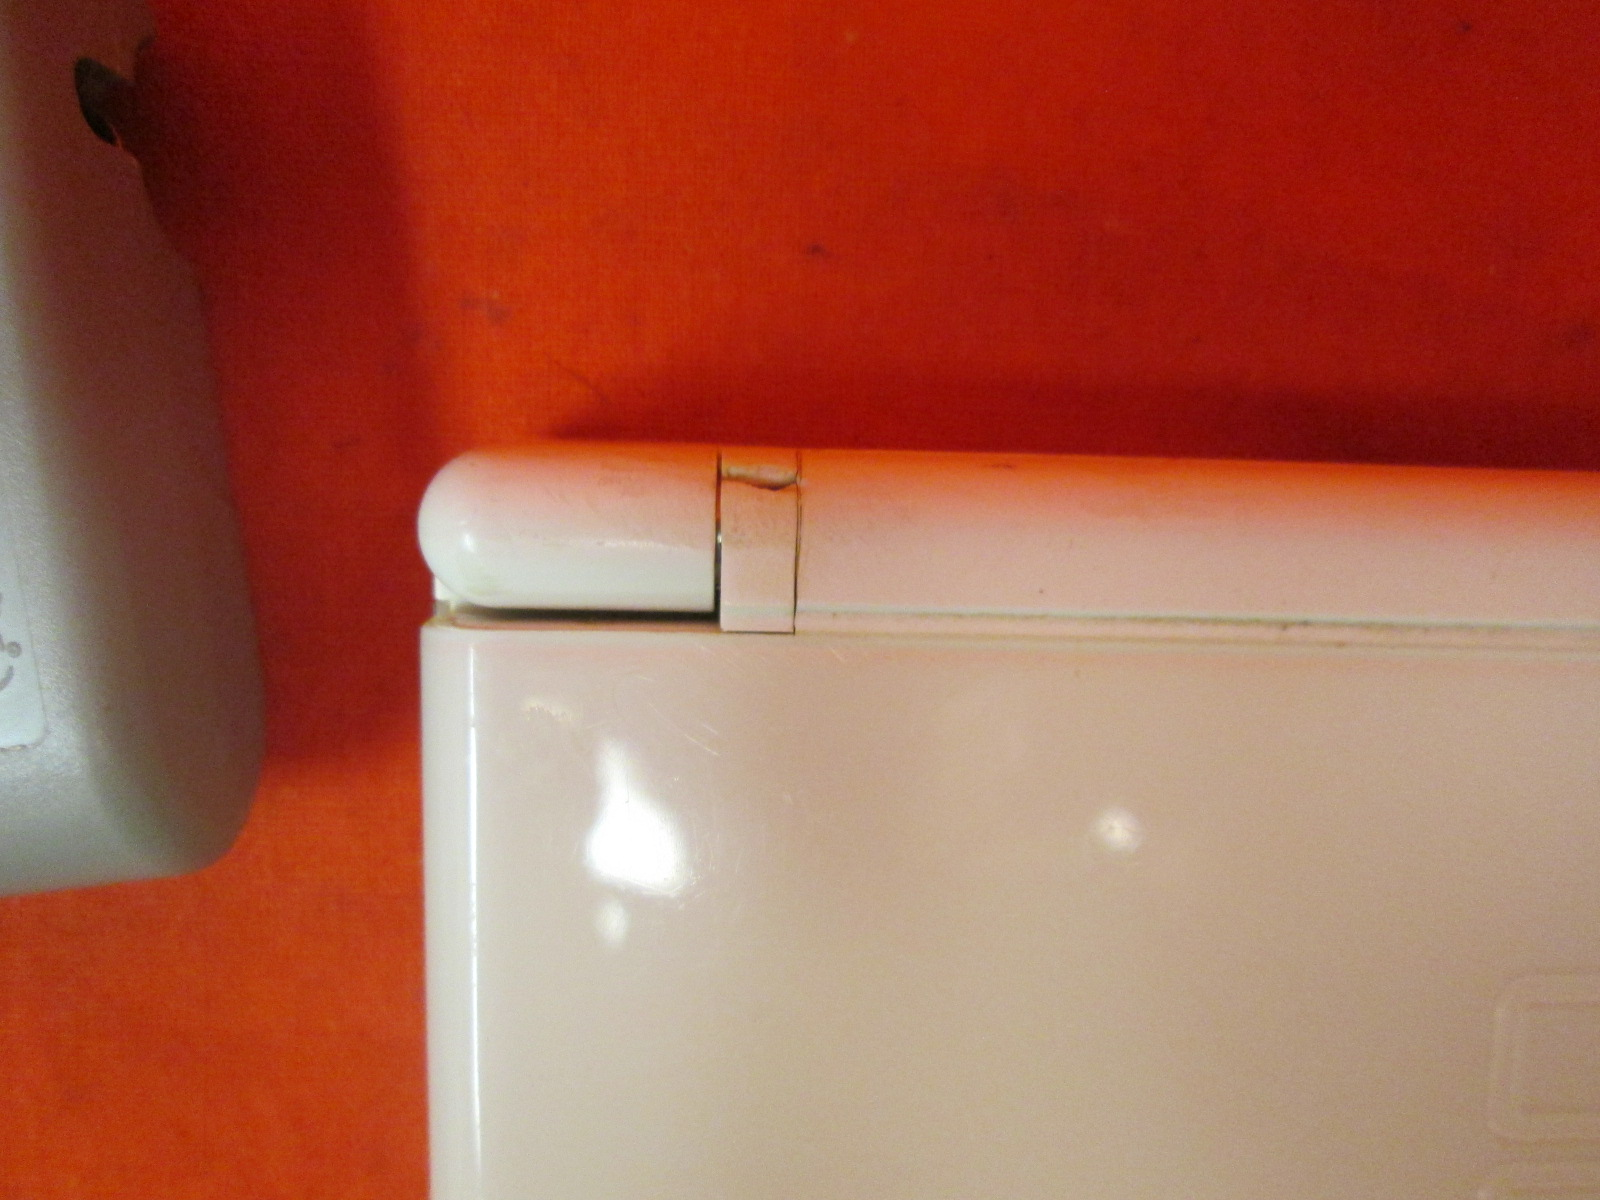 Image 1 of Nintendo DS Lite Polar White Handheld Video Game Console